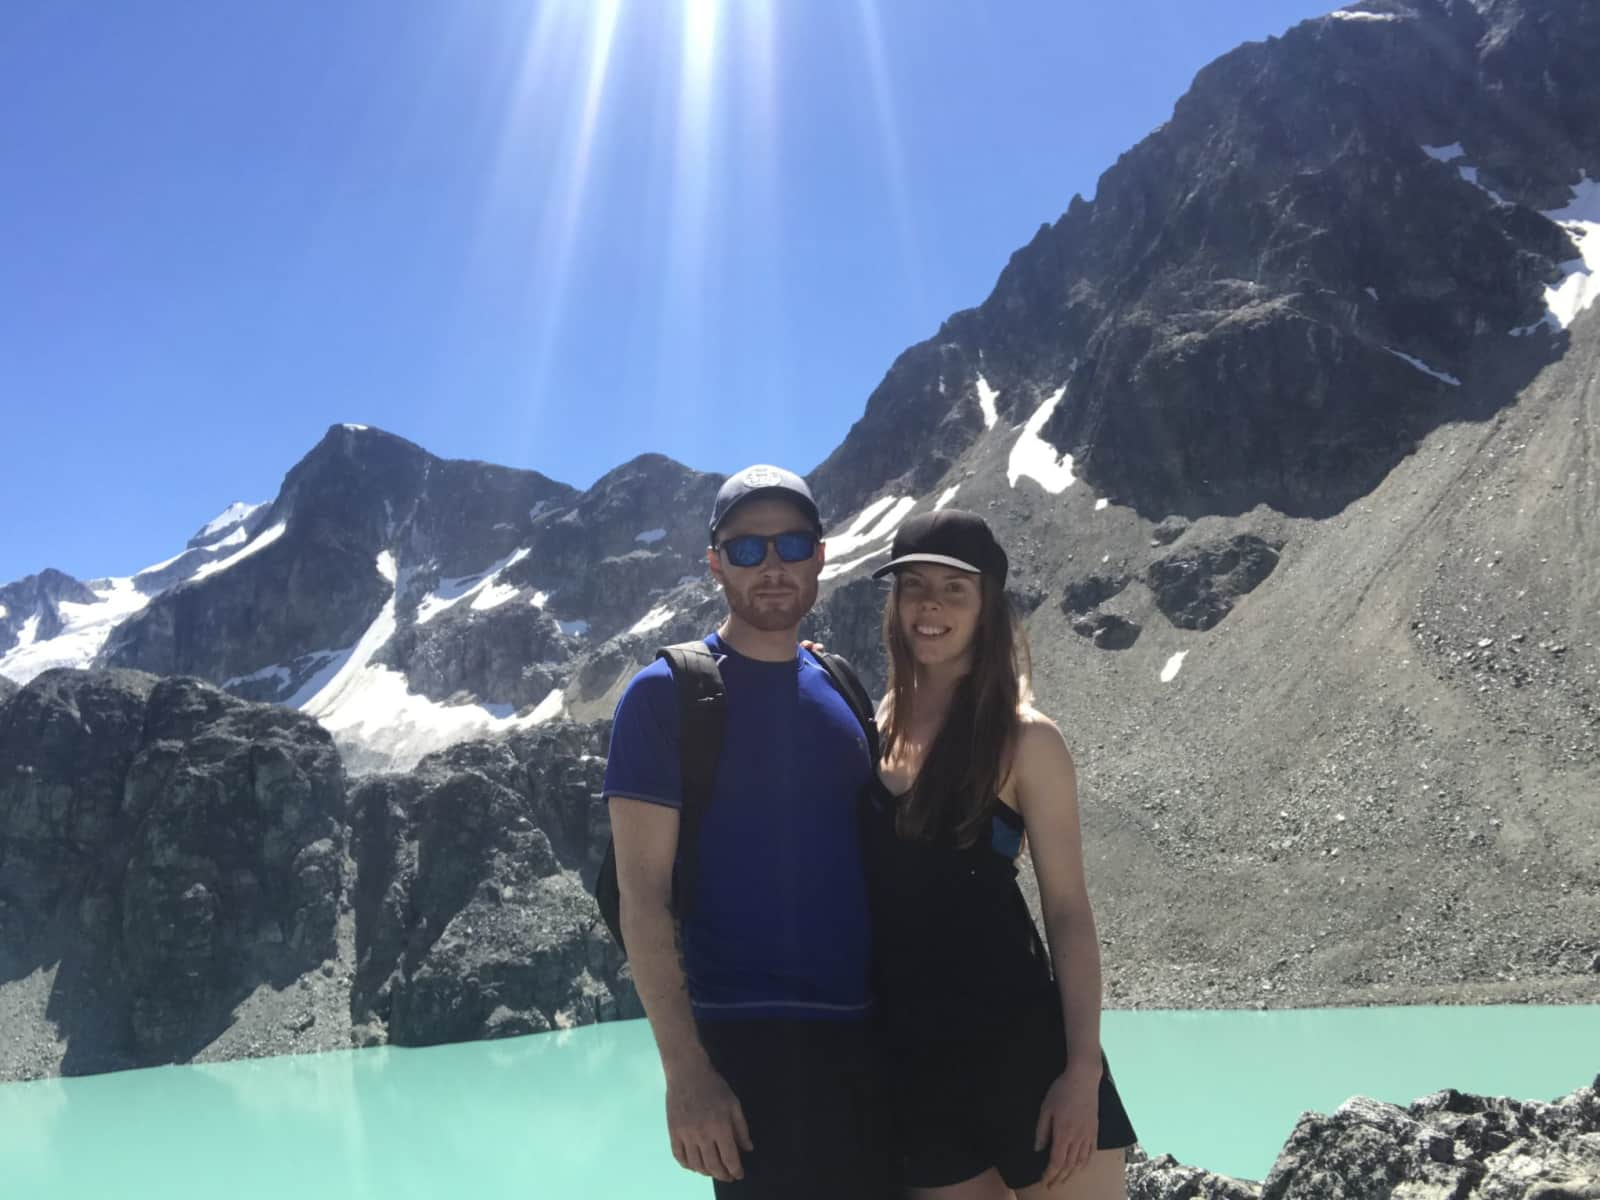 Bronwen & Jay from Vancouver, British Columbia, Canada